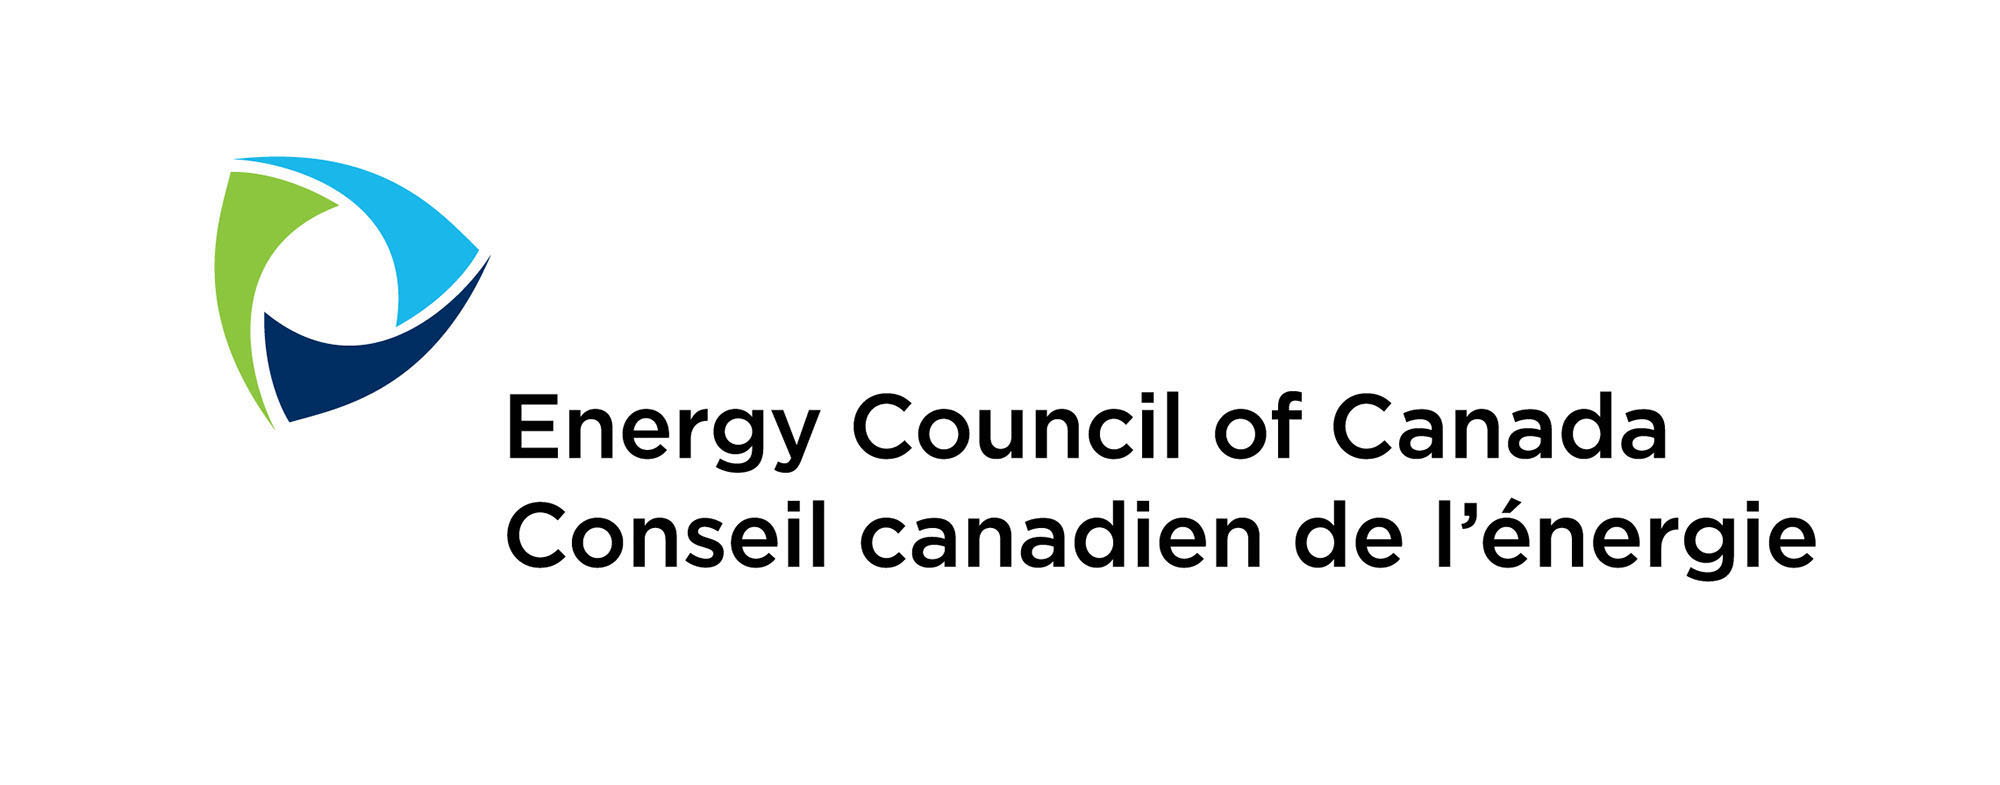 Canadian Energy Industry: Updates and Insights